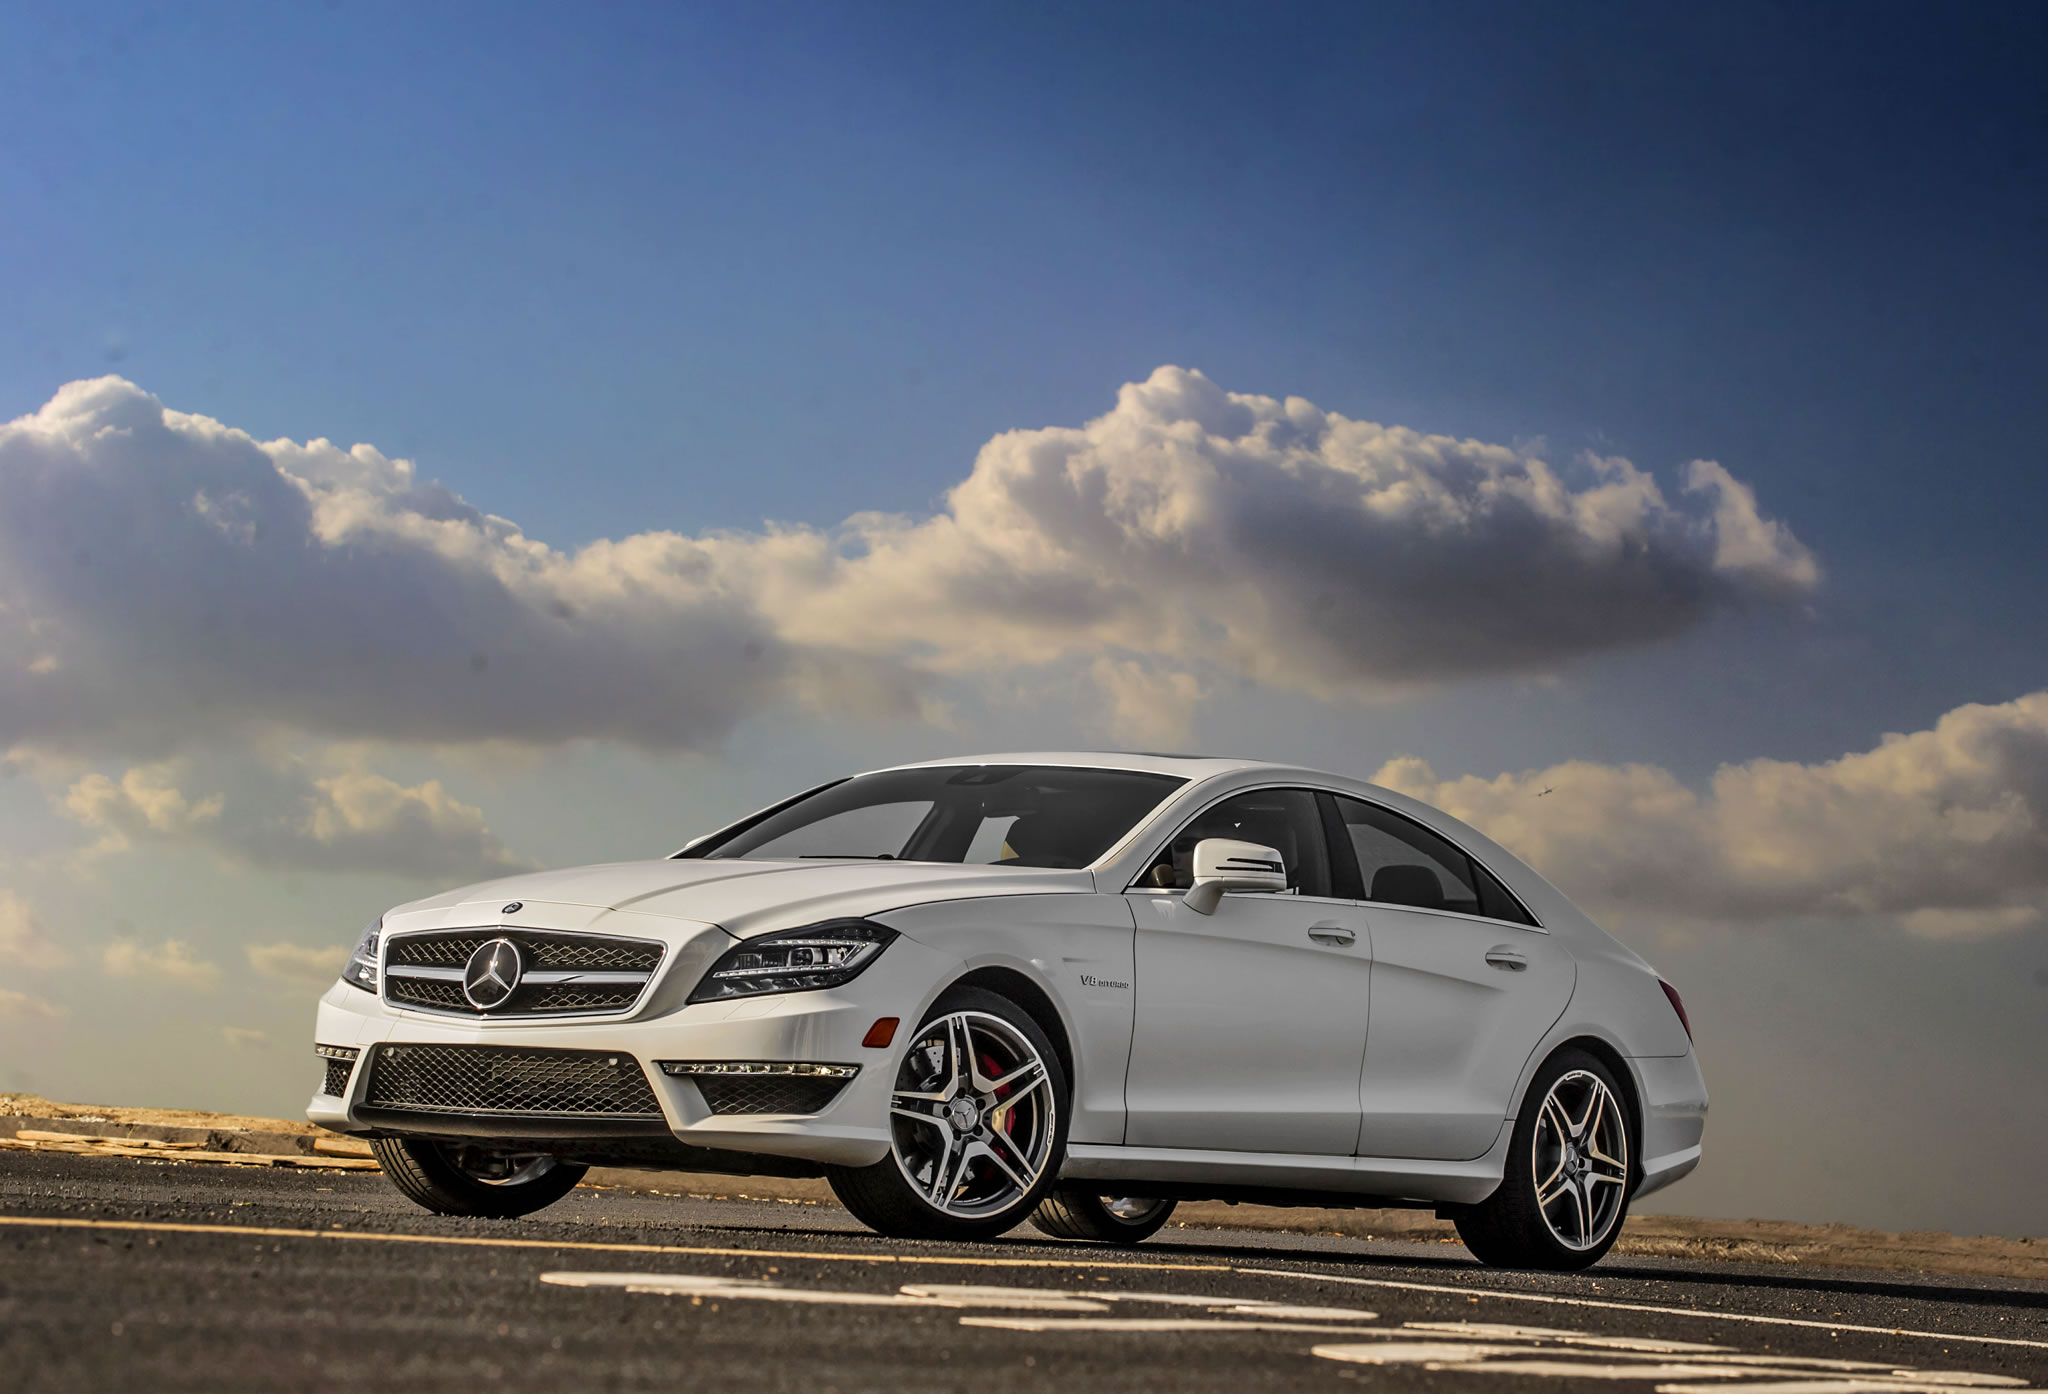 2014 mercedes benz cls63 amg s model front photo white for 2014 mercedes benz cls 63 amg